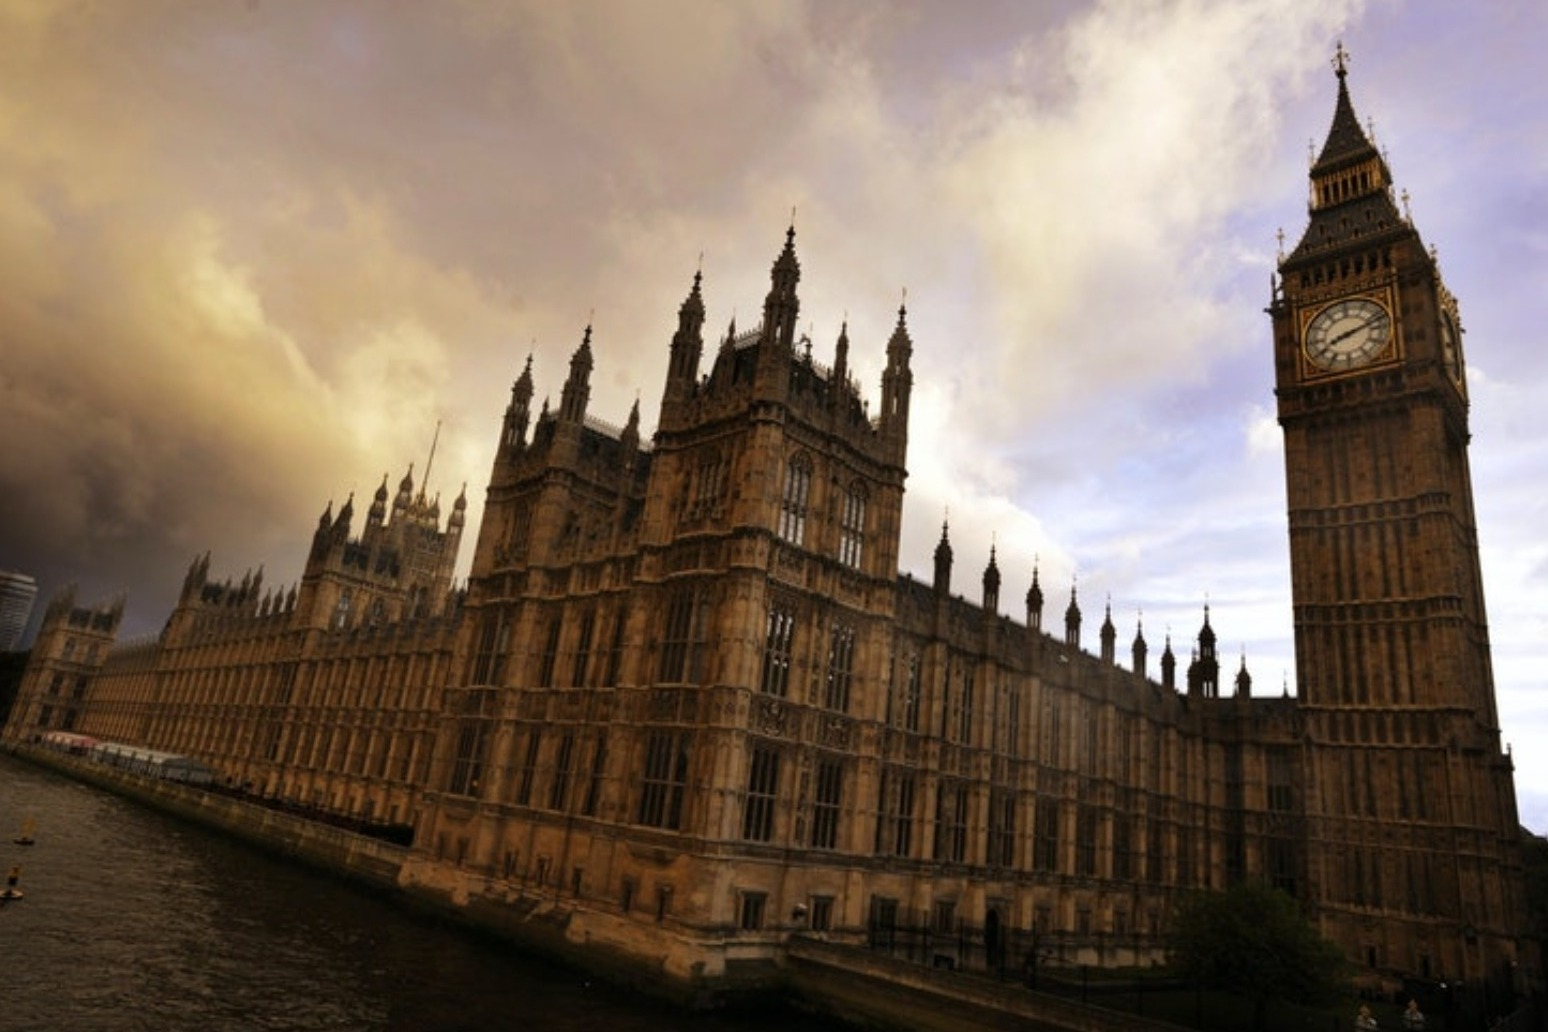 Ministers accused over data protection during pandemic